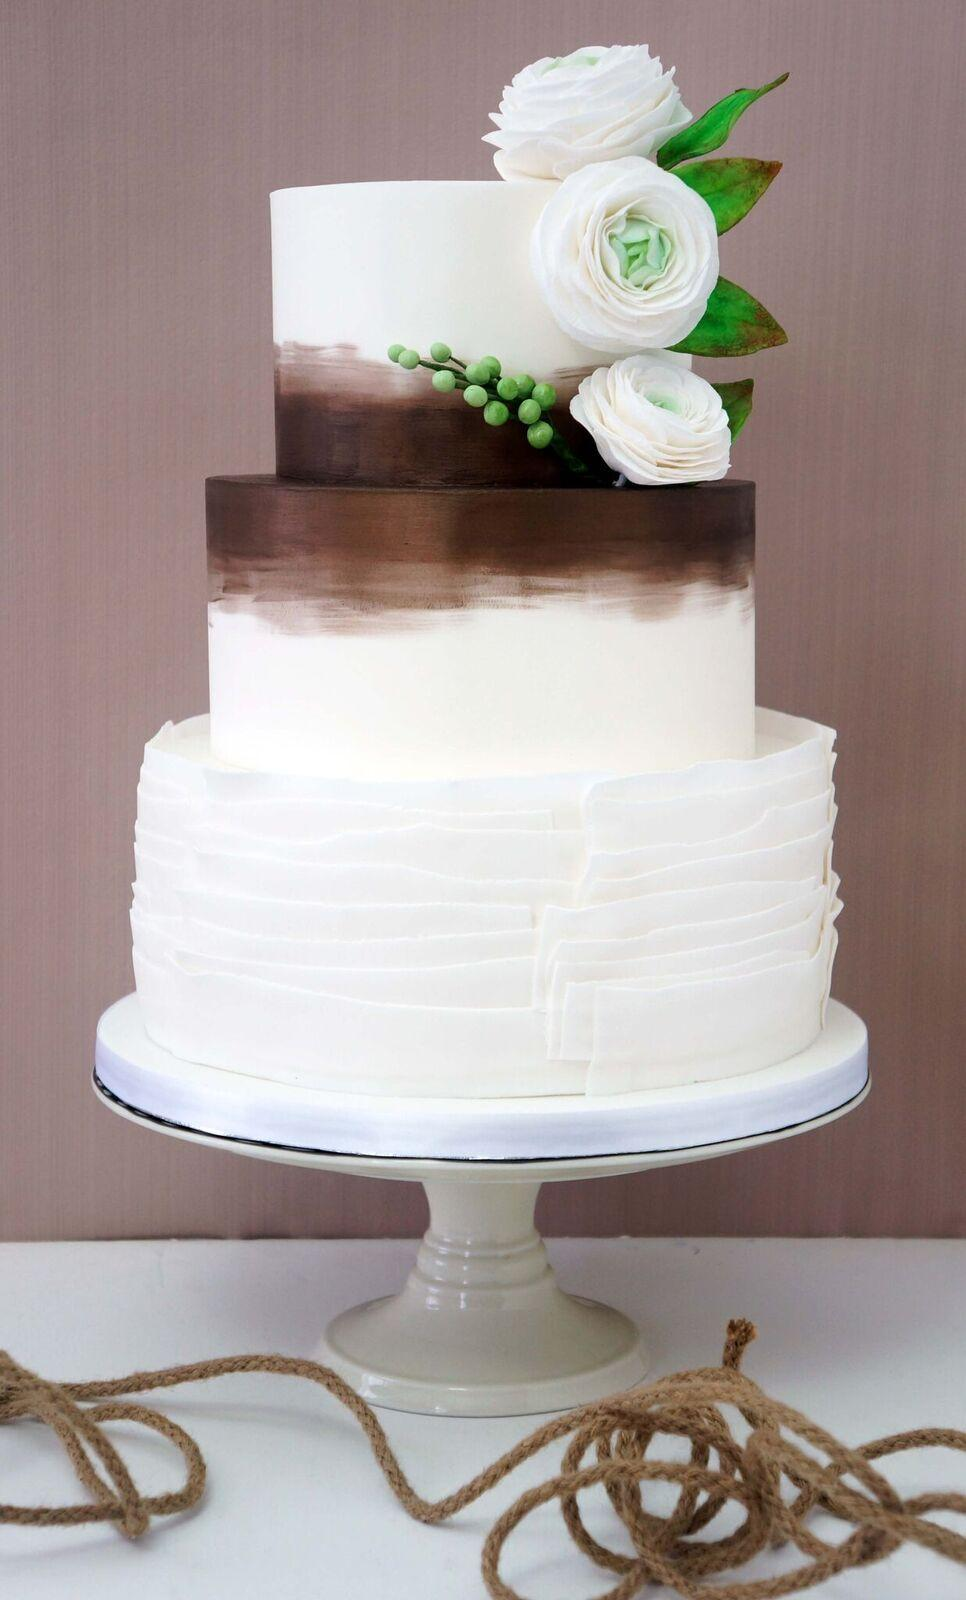 Brown and white ruffle wedding